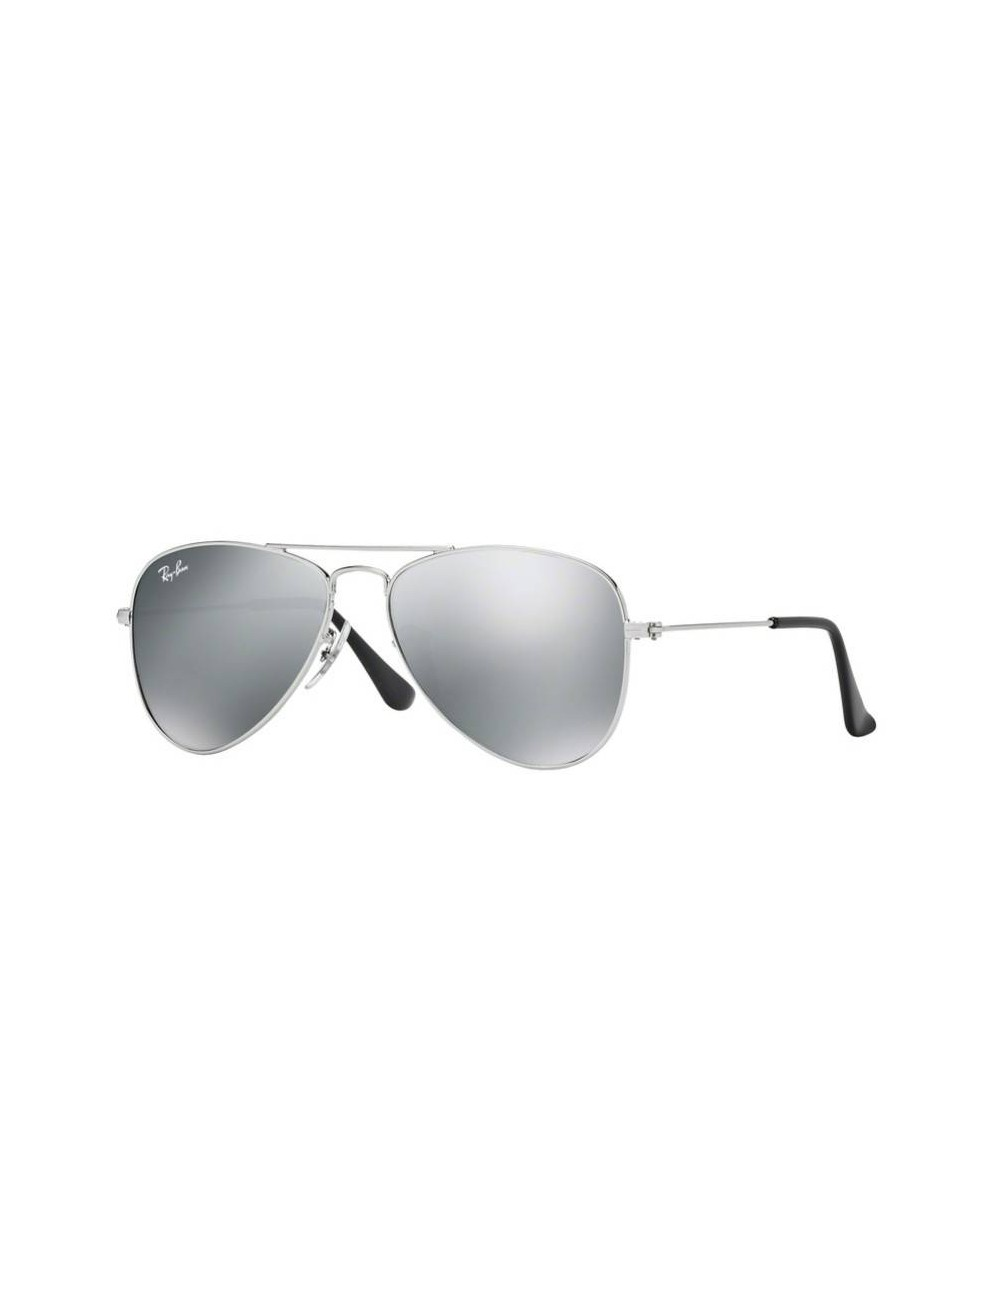 Ray 2126g Shiny Silver 9506s Junior Rj De Ban Soleil Lunettes fvYb6gy7